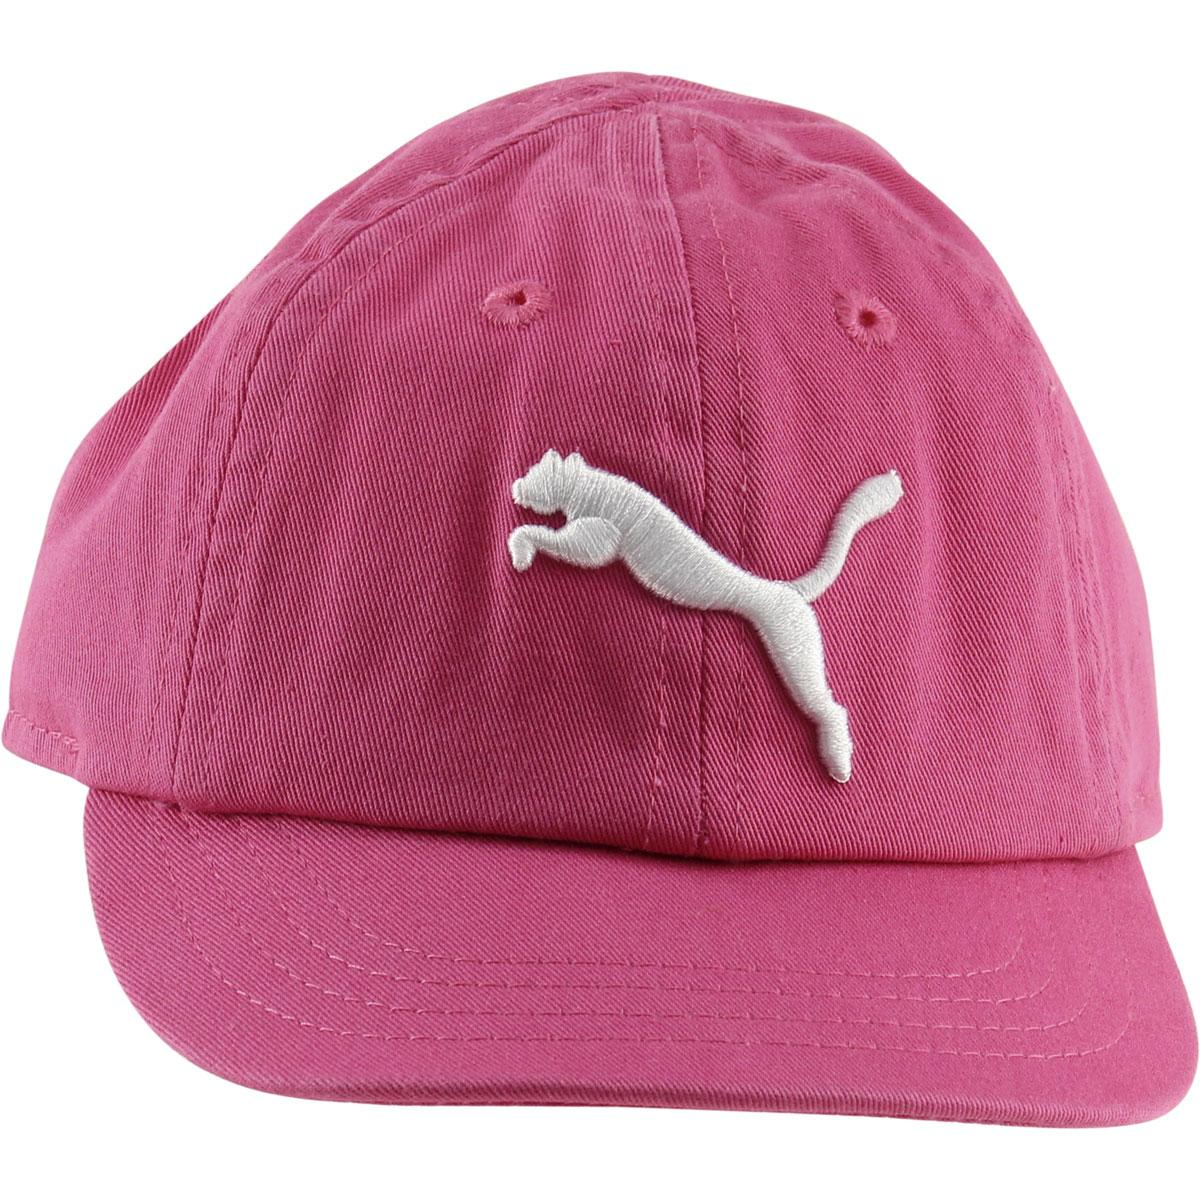 Puma Infant Girl s Evercat Podium Cotton Baseball Cap Hat b2f0f3230e1